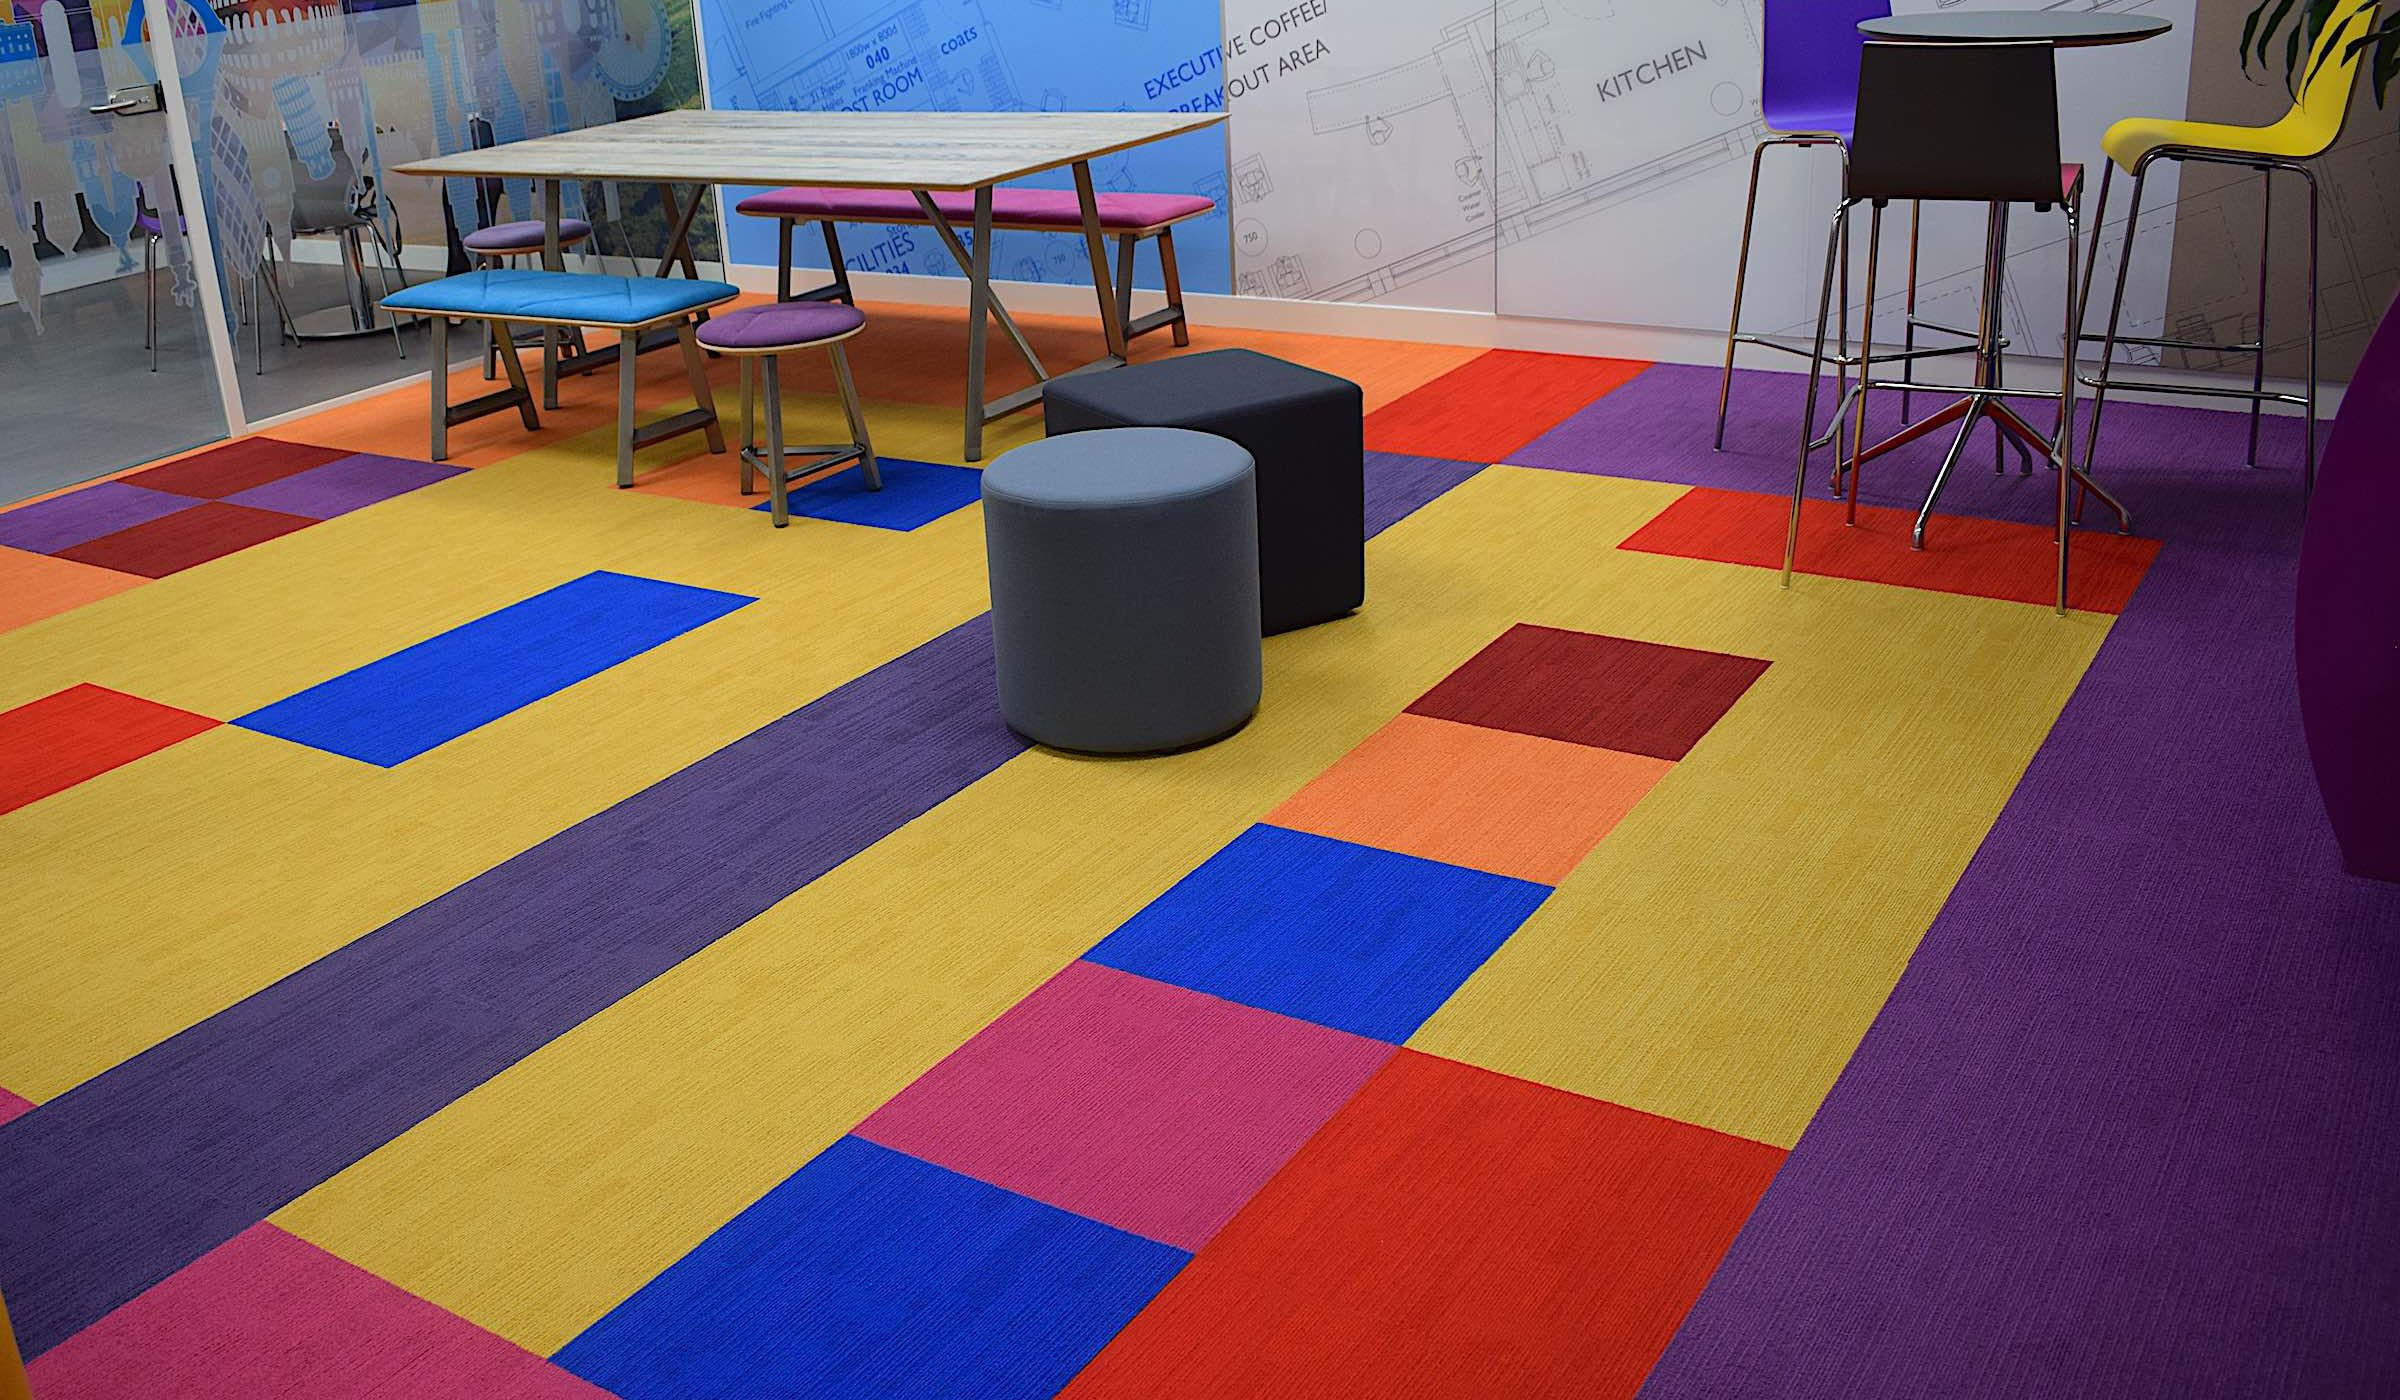 Highlights | Paragon Carpet Tiles | Commercial Carpet Tiles | Design Carpet Tiles 2